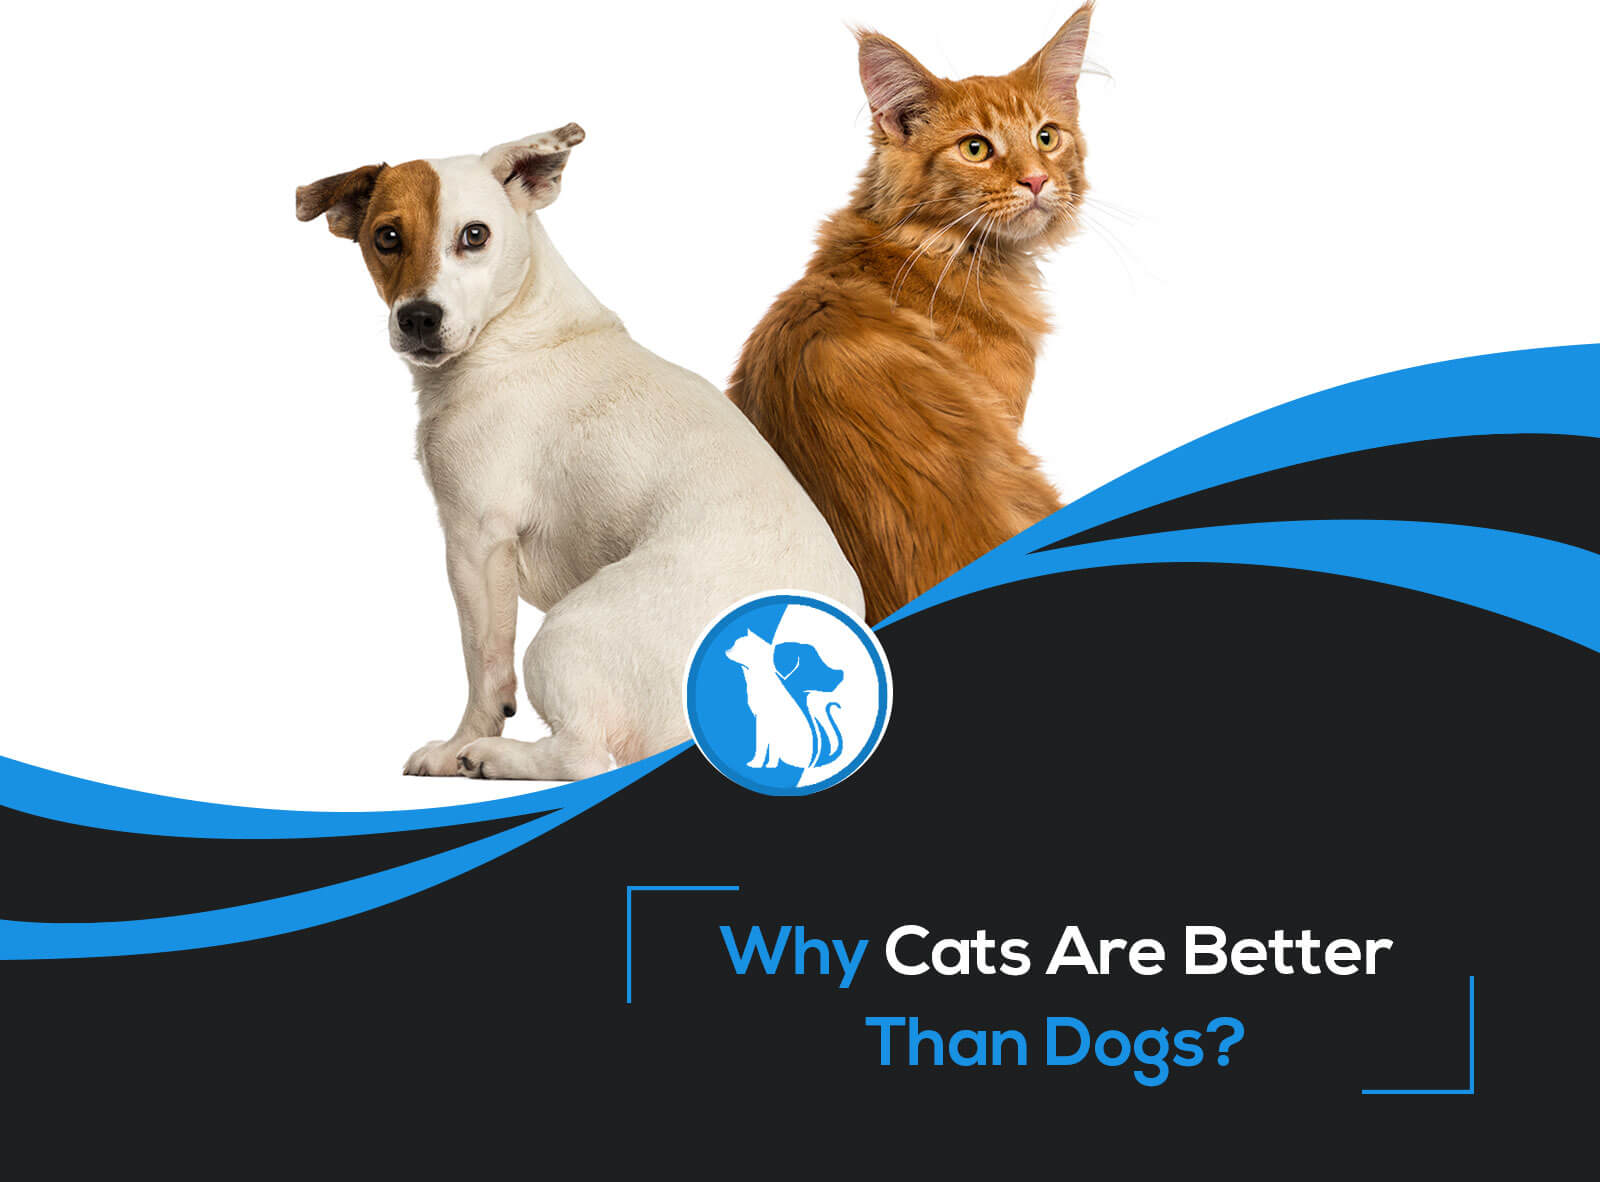 10 Reasons Why Cats Are Better Than Dogs